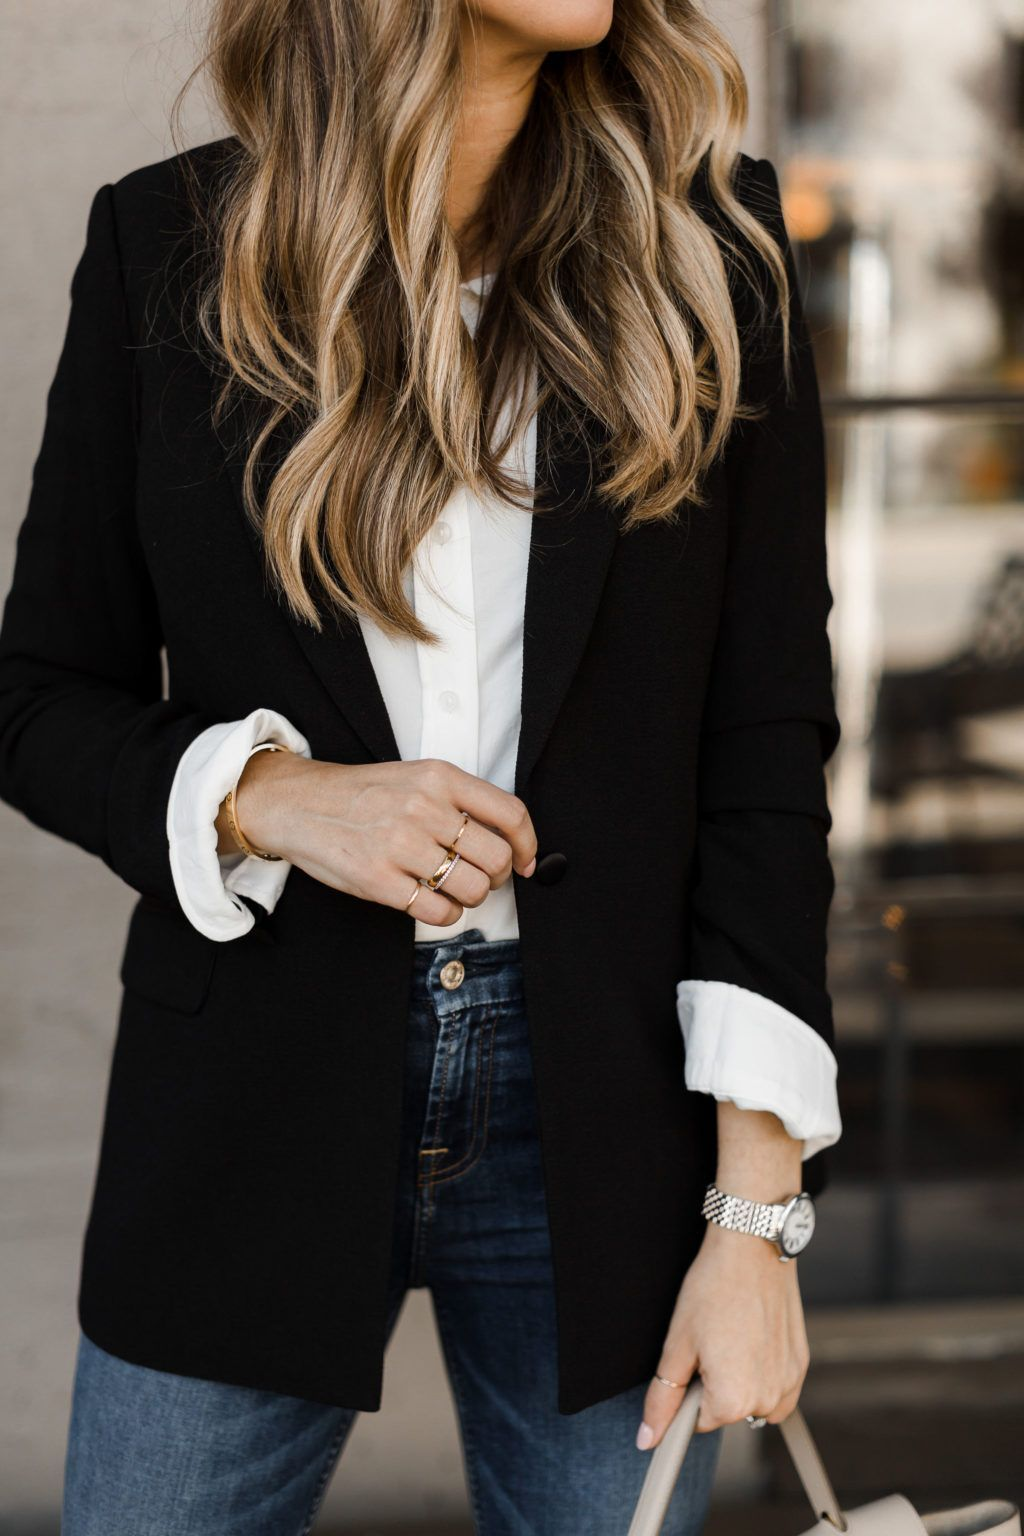 The Classic Pieces Every Girl Should Have In Her Wardrobe When it comes to classics, there are three pieces I like to have handy: a white blouse, a black blazer, and a good pair of jeans that fit just right. With the arrival of cool weather (finally!), it officially feels like fall around Dallas. There\u2019s something about fall that always makes me want to stick to really classic \u2026 #fallbeauty